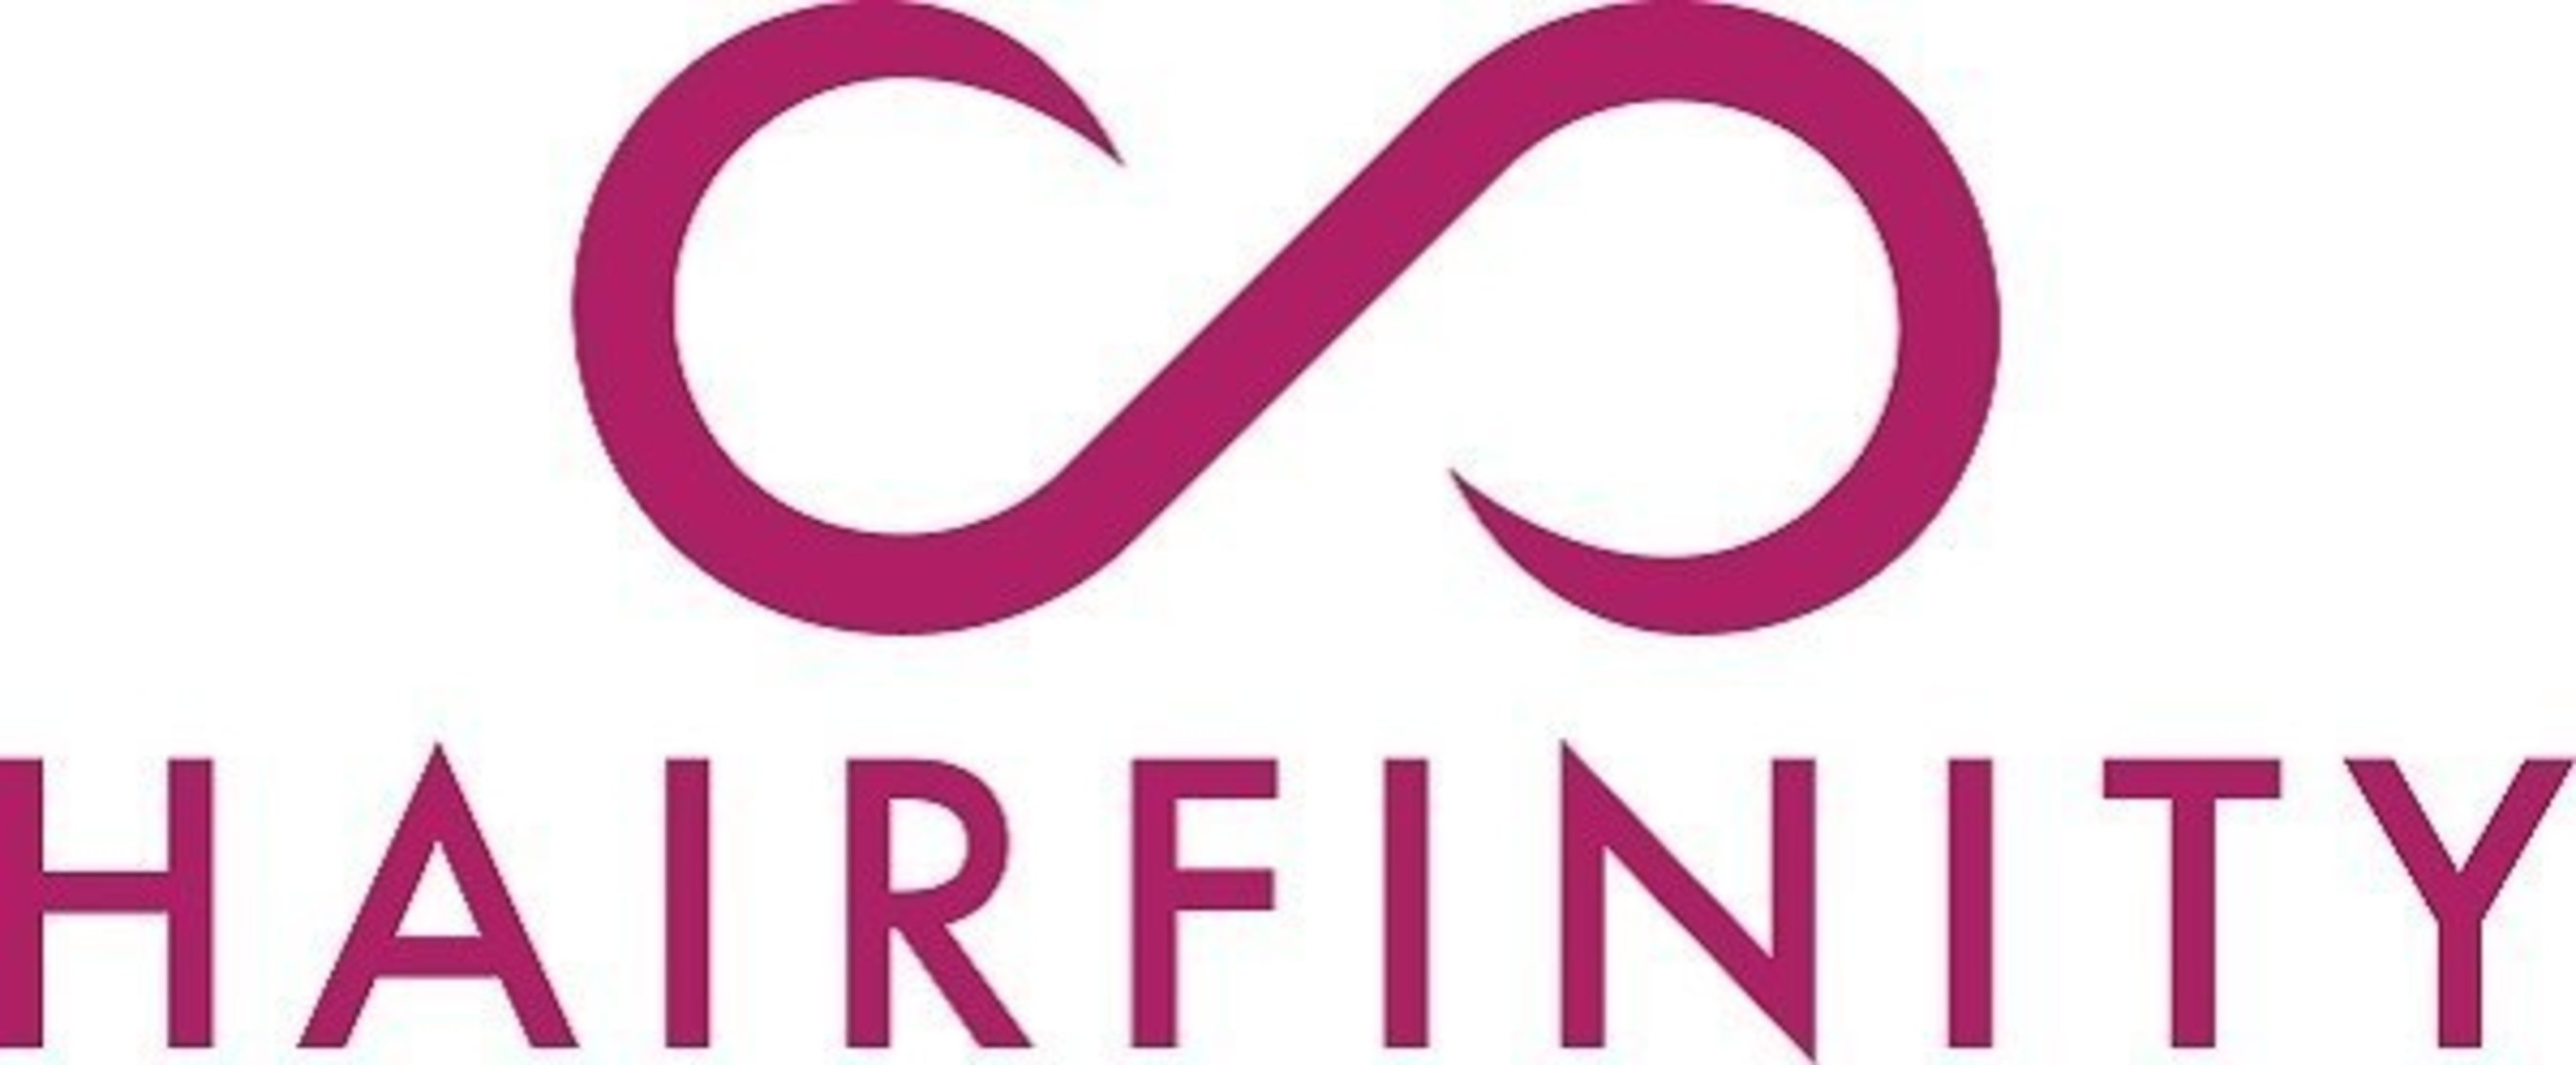 Hairfinity logo. Hairfinity collaboration with winkl for their influencer marketing campaign.